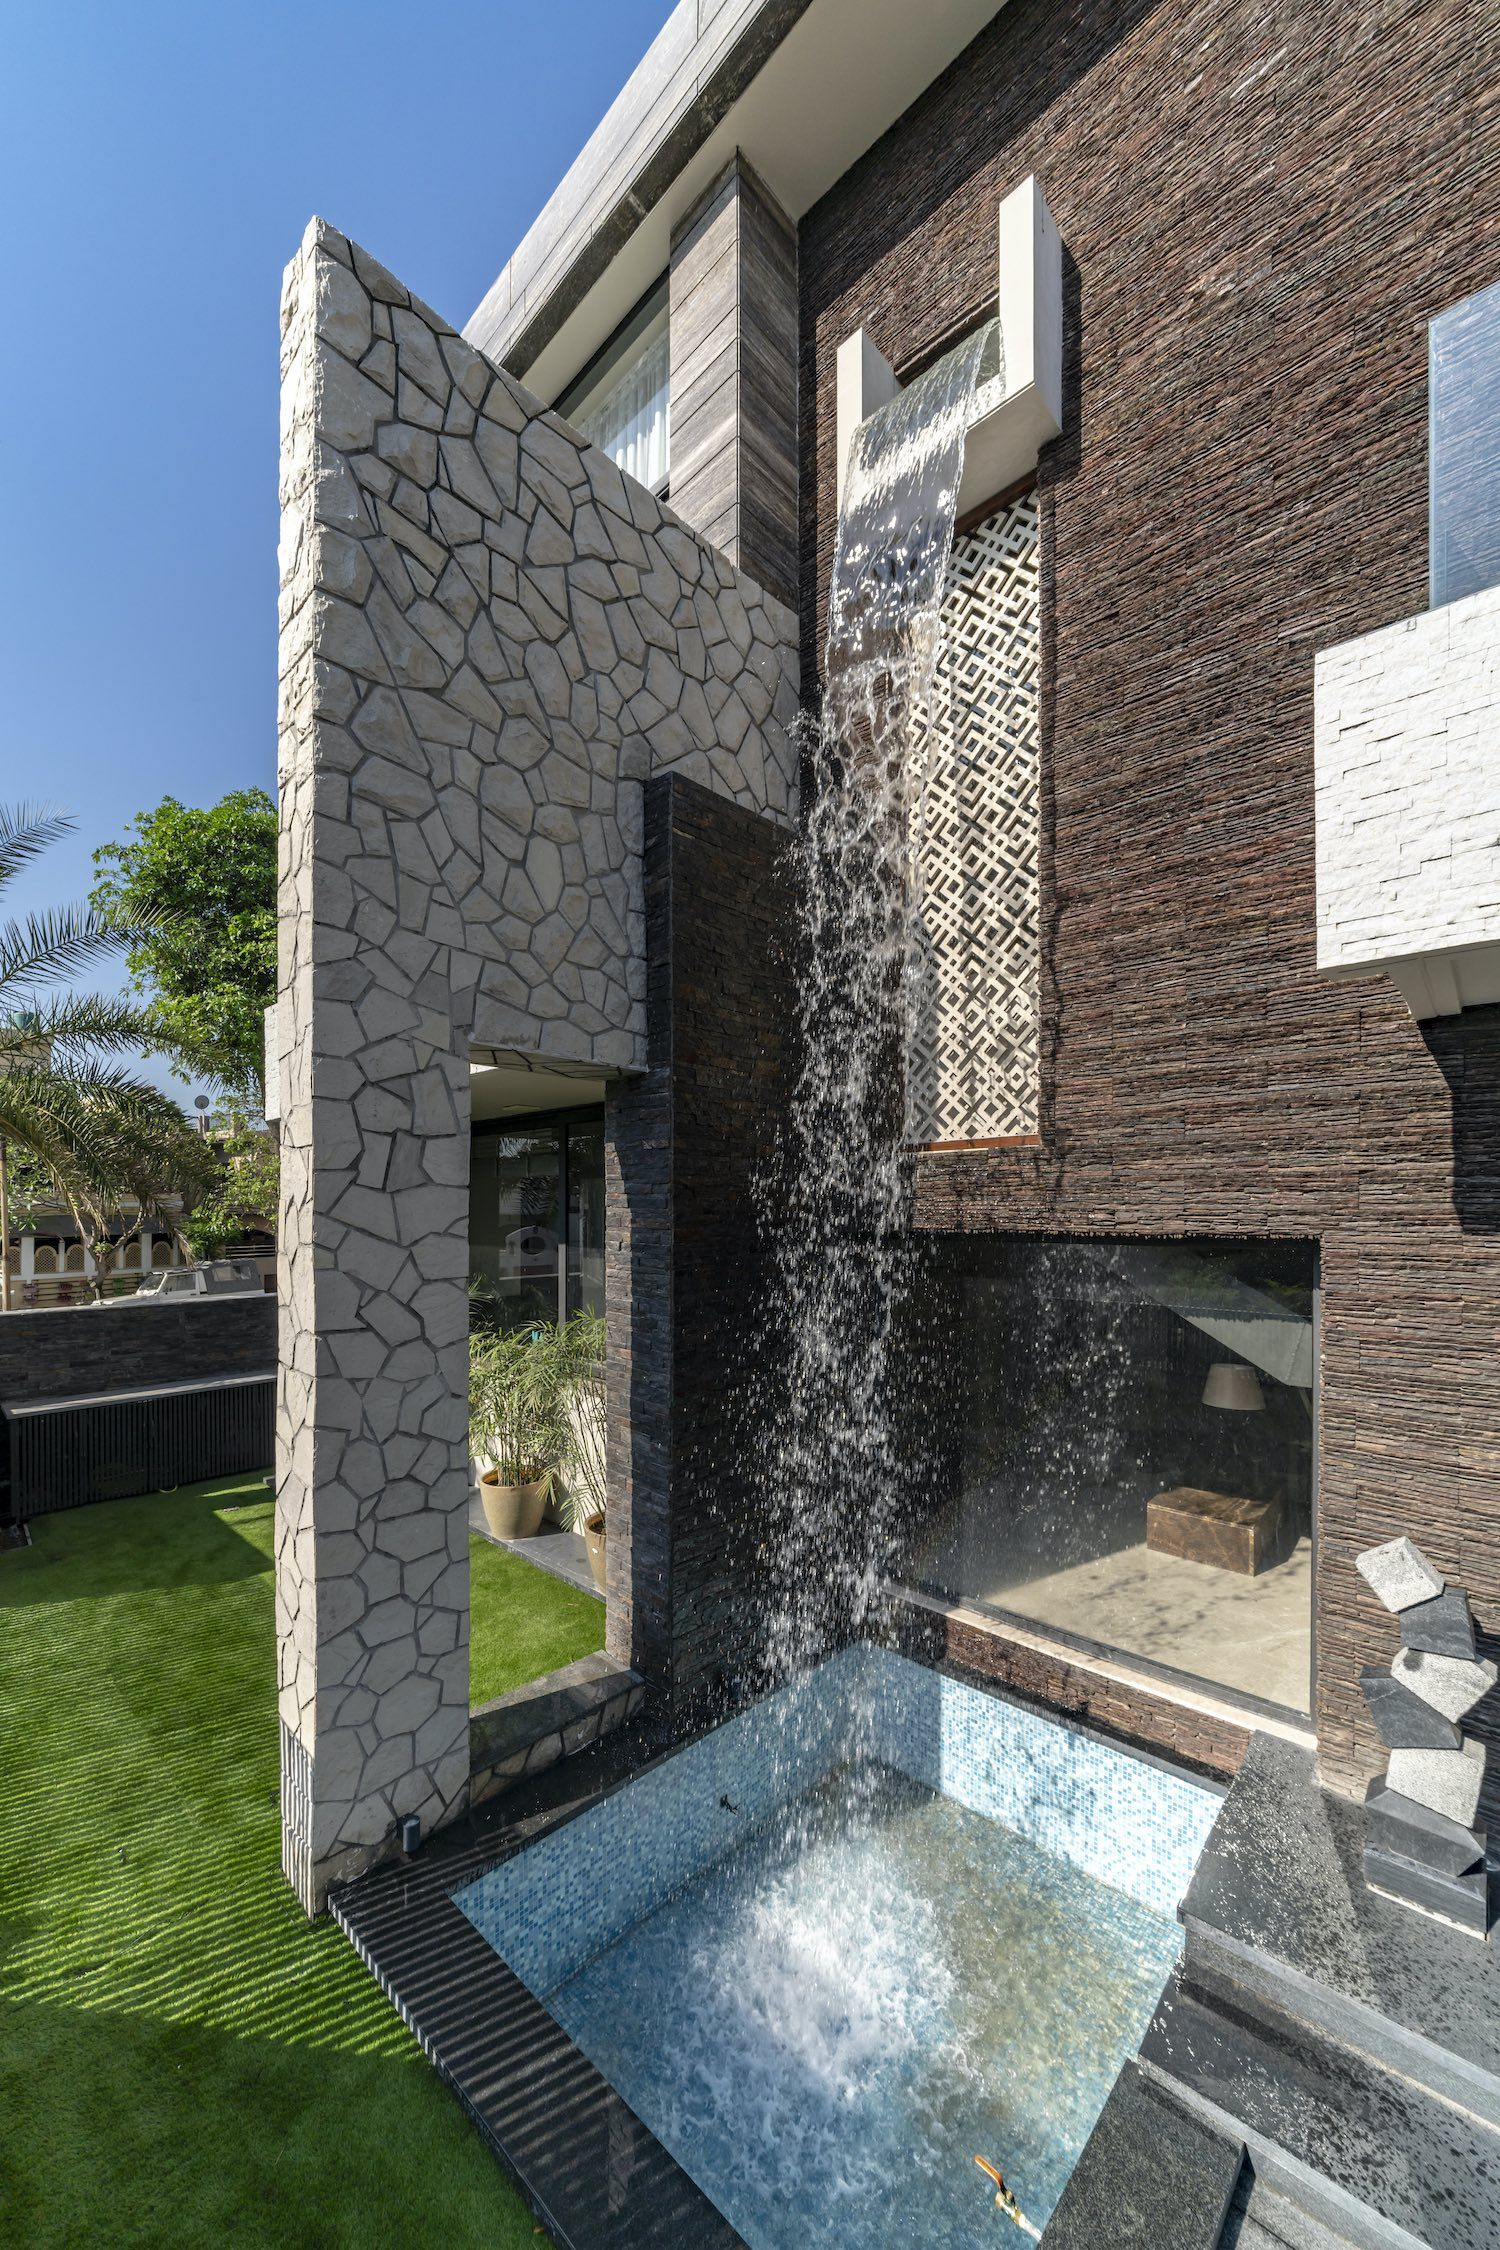 The Waterfall House In Jalandhar Punjab India By Space Race Architects In 2020 Waterfall House Bungalow Design Exterior House Color